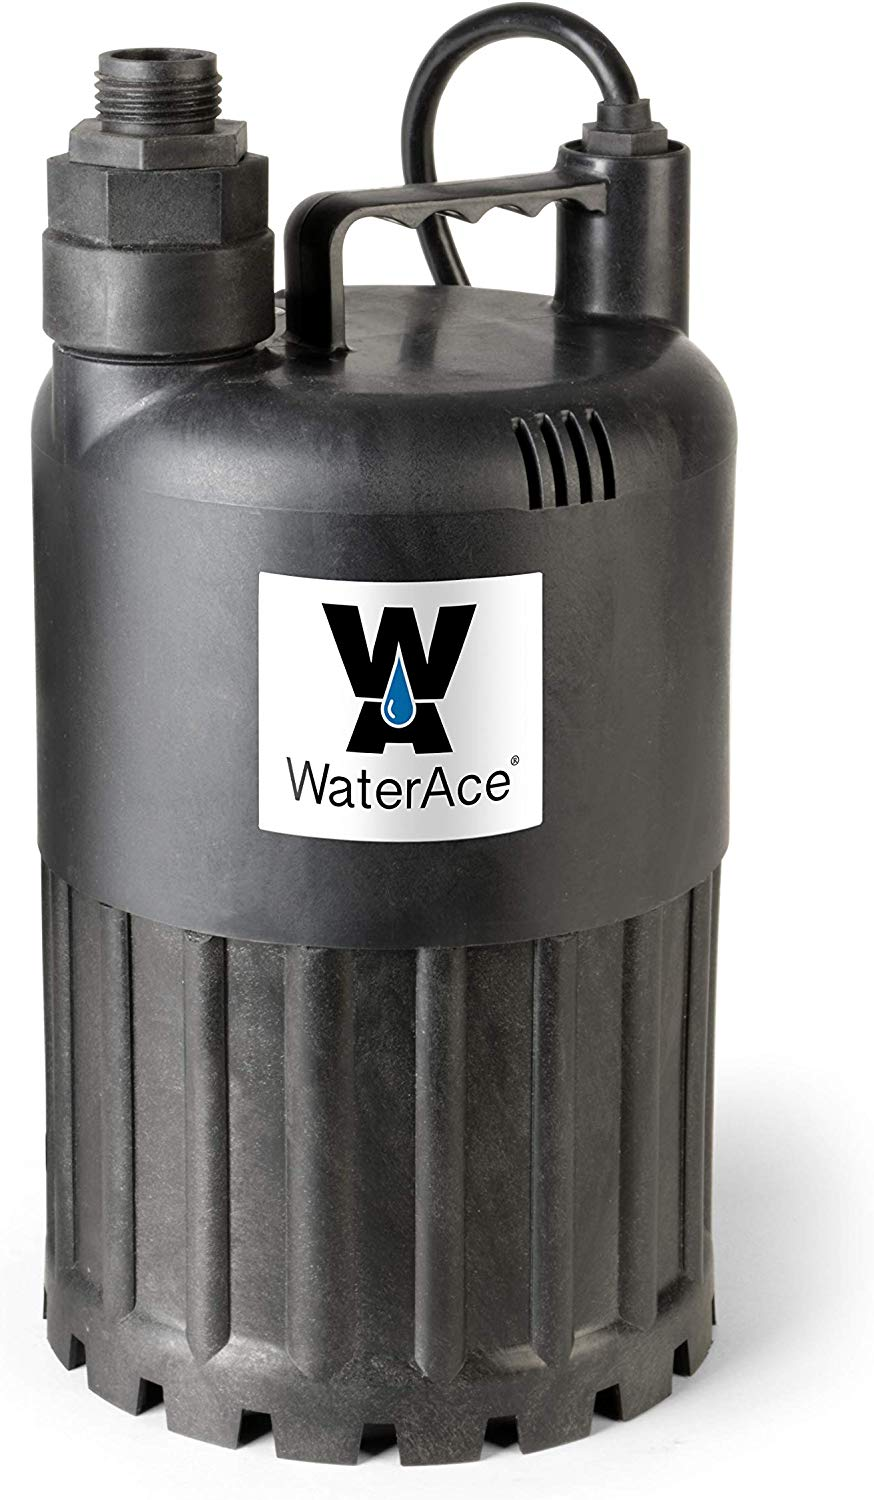 WaterAce Submersible Utility Pump